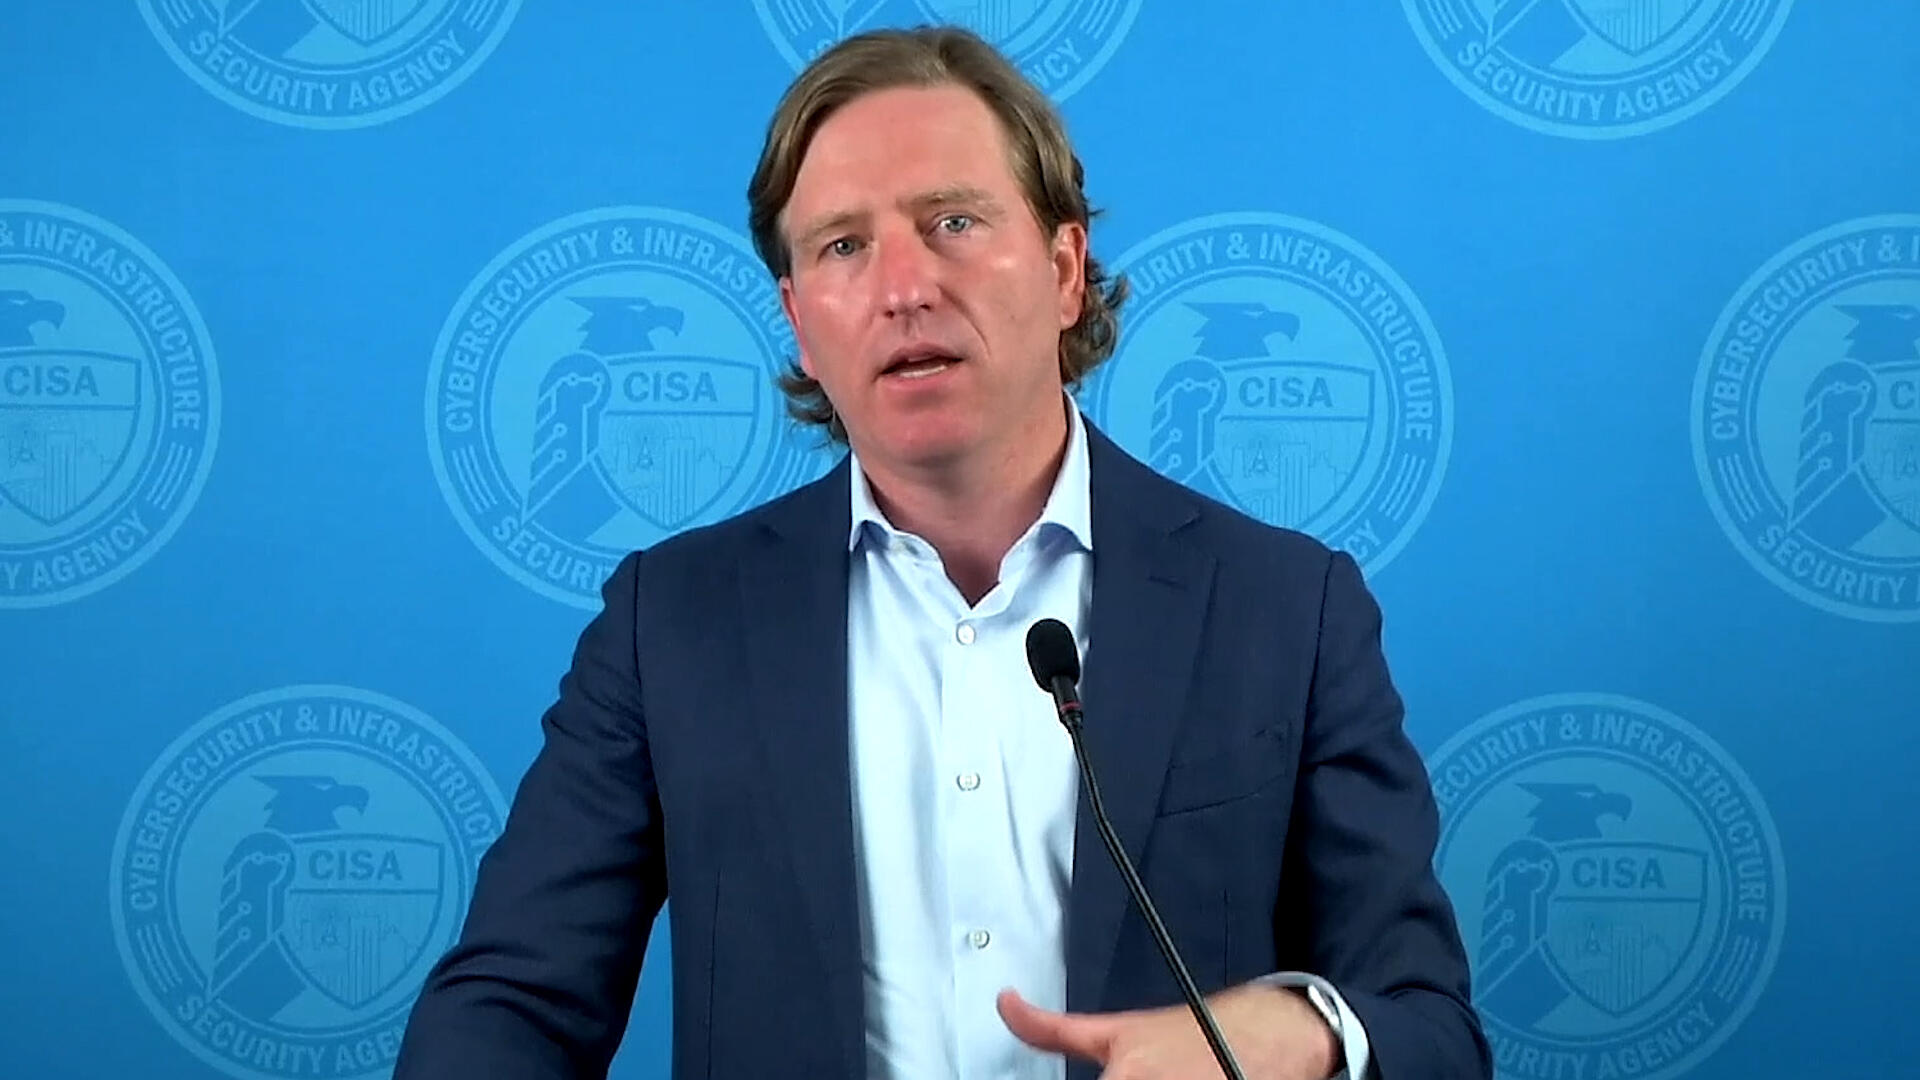 Video: CISA director: Paper record key to keeping 2020 election secure